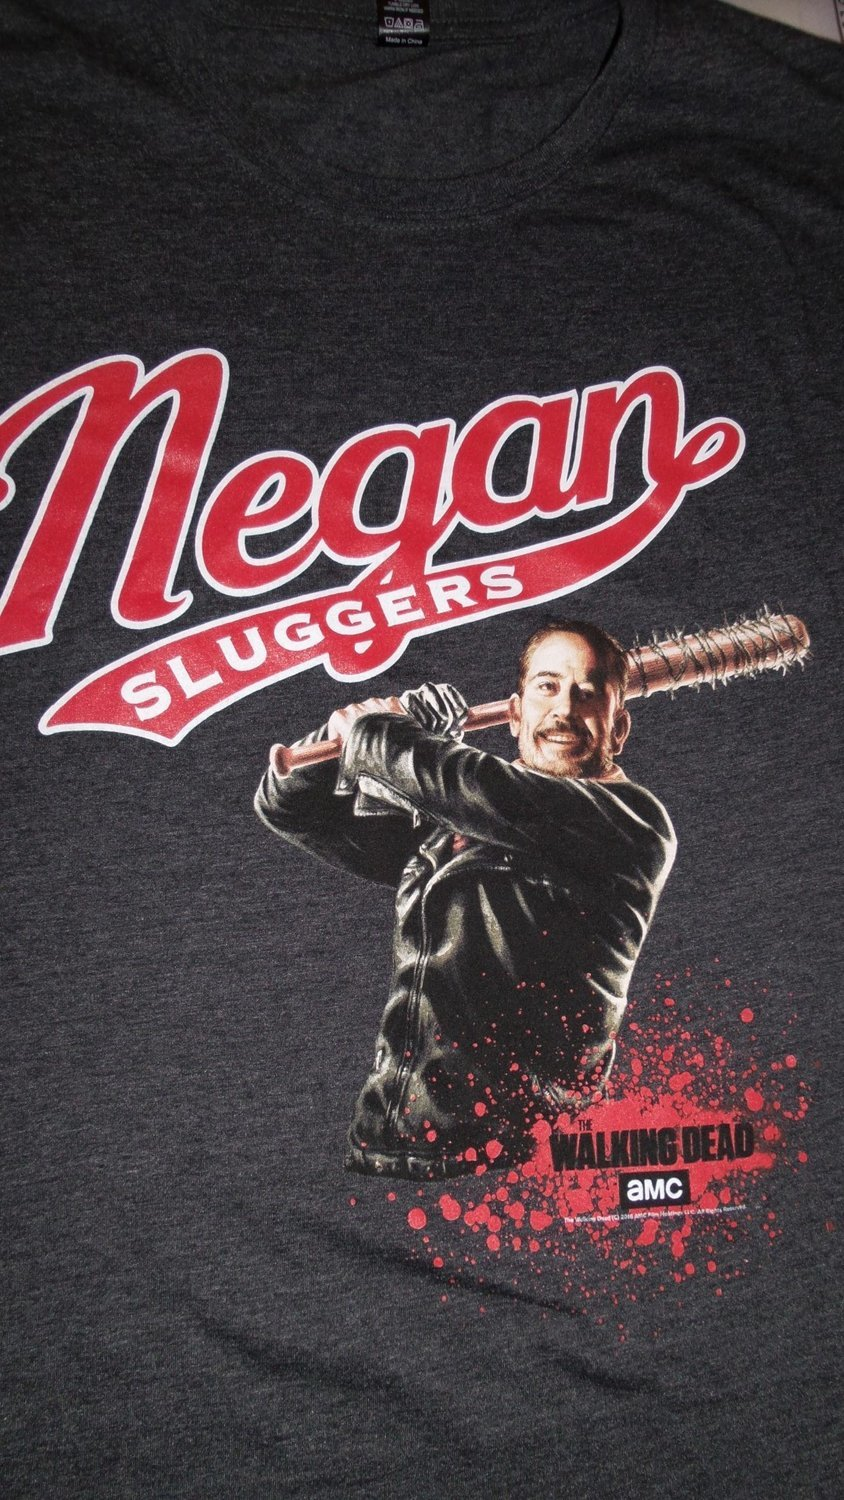 "Walking Dead ""Negan Sluggers"" T-Shirt"